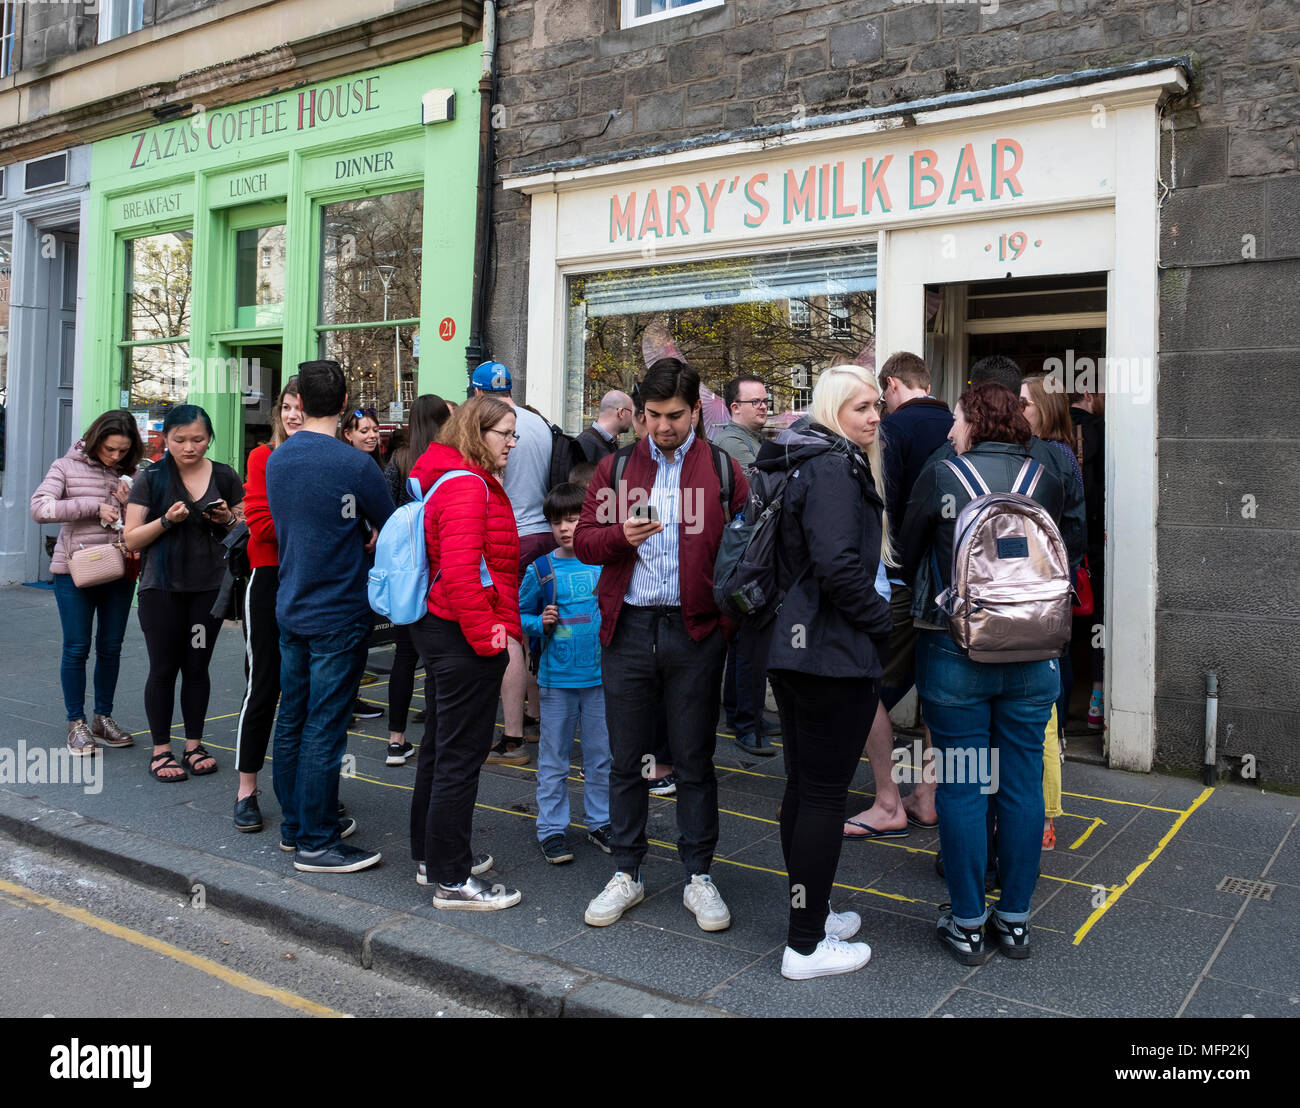 Queue of people outside Mary's Milk Bar on Grassmarket in Edinburgh Old Town, Scotland, UK - Stock Image